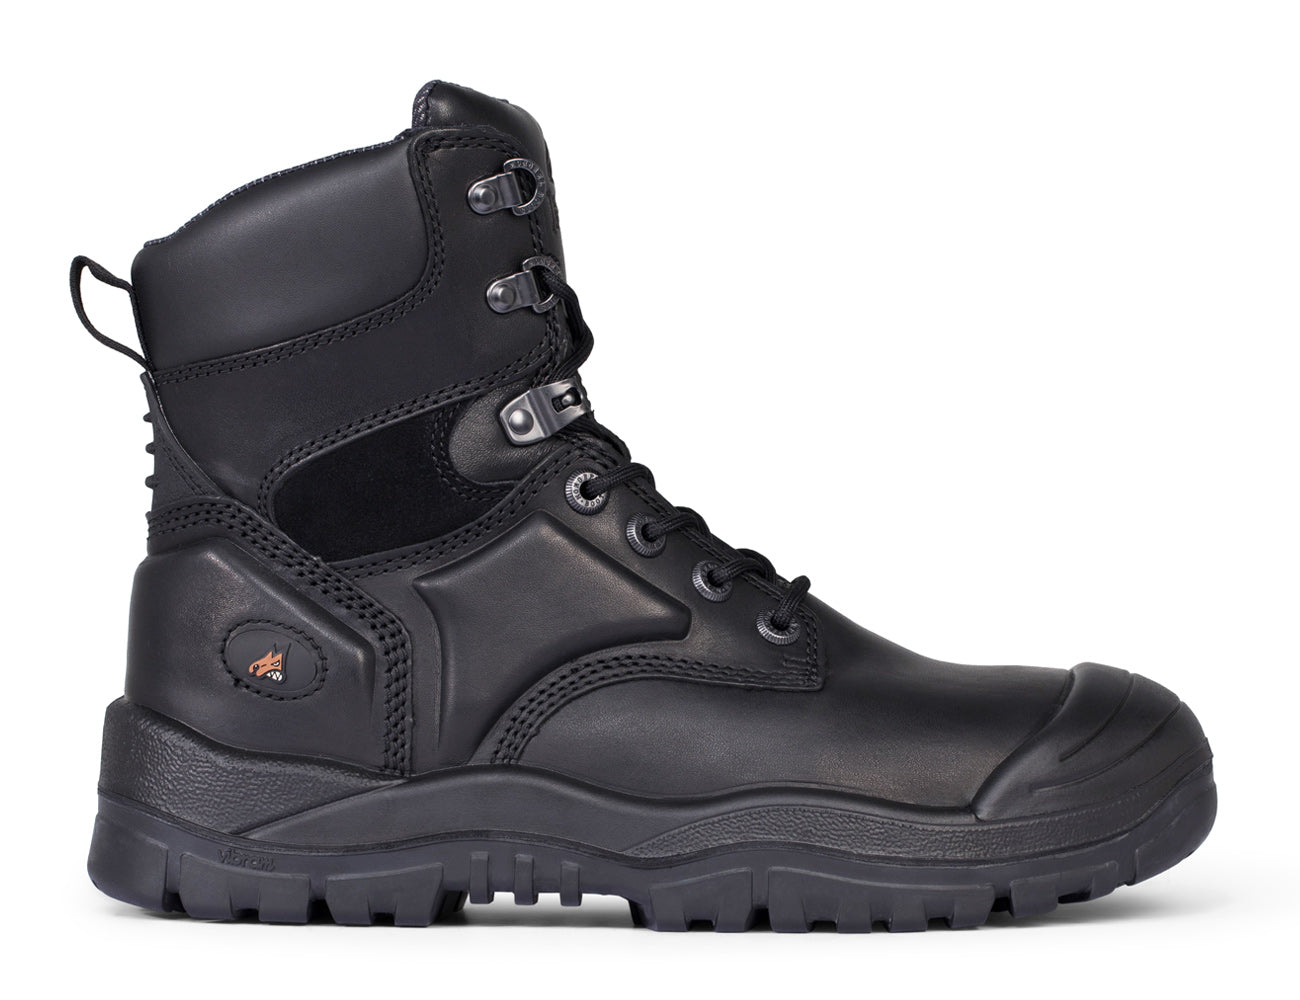 Mongrel High Leg Lace Up Safety Boots with Rubber Outsole - 550020